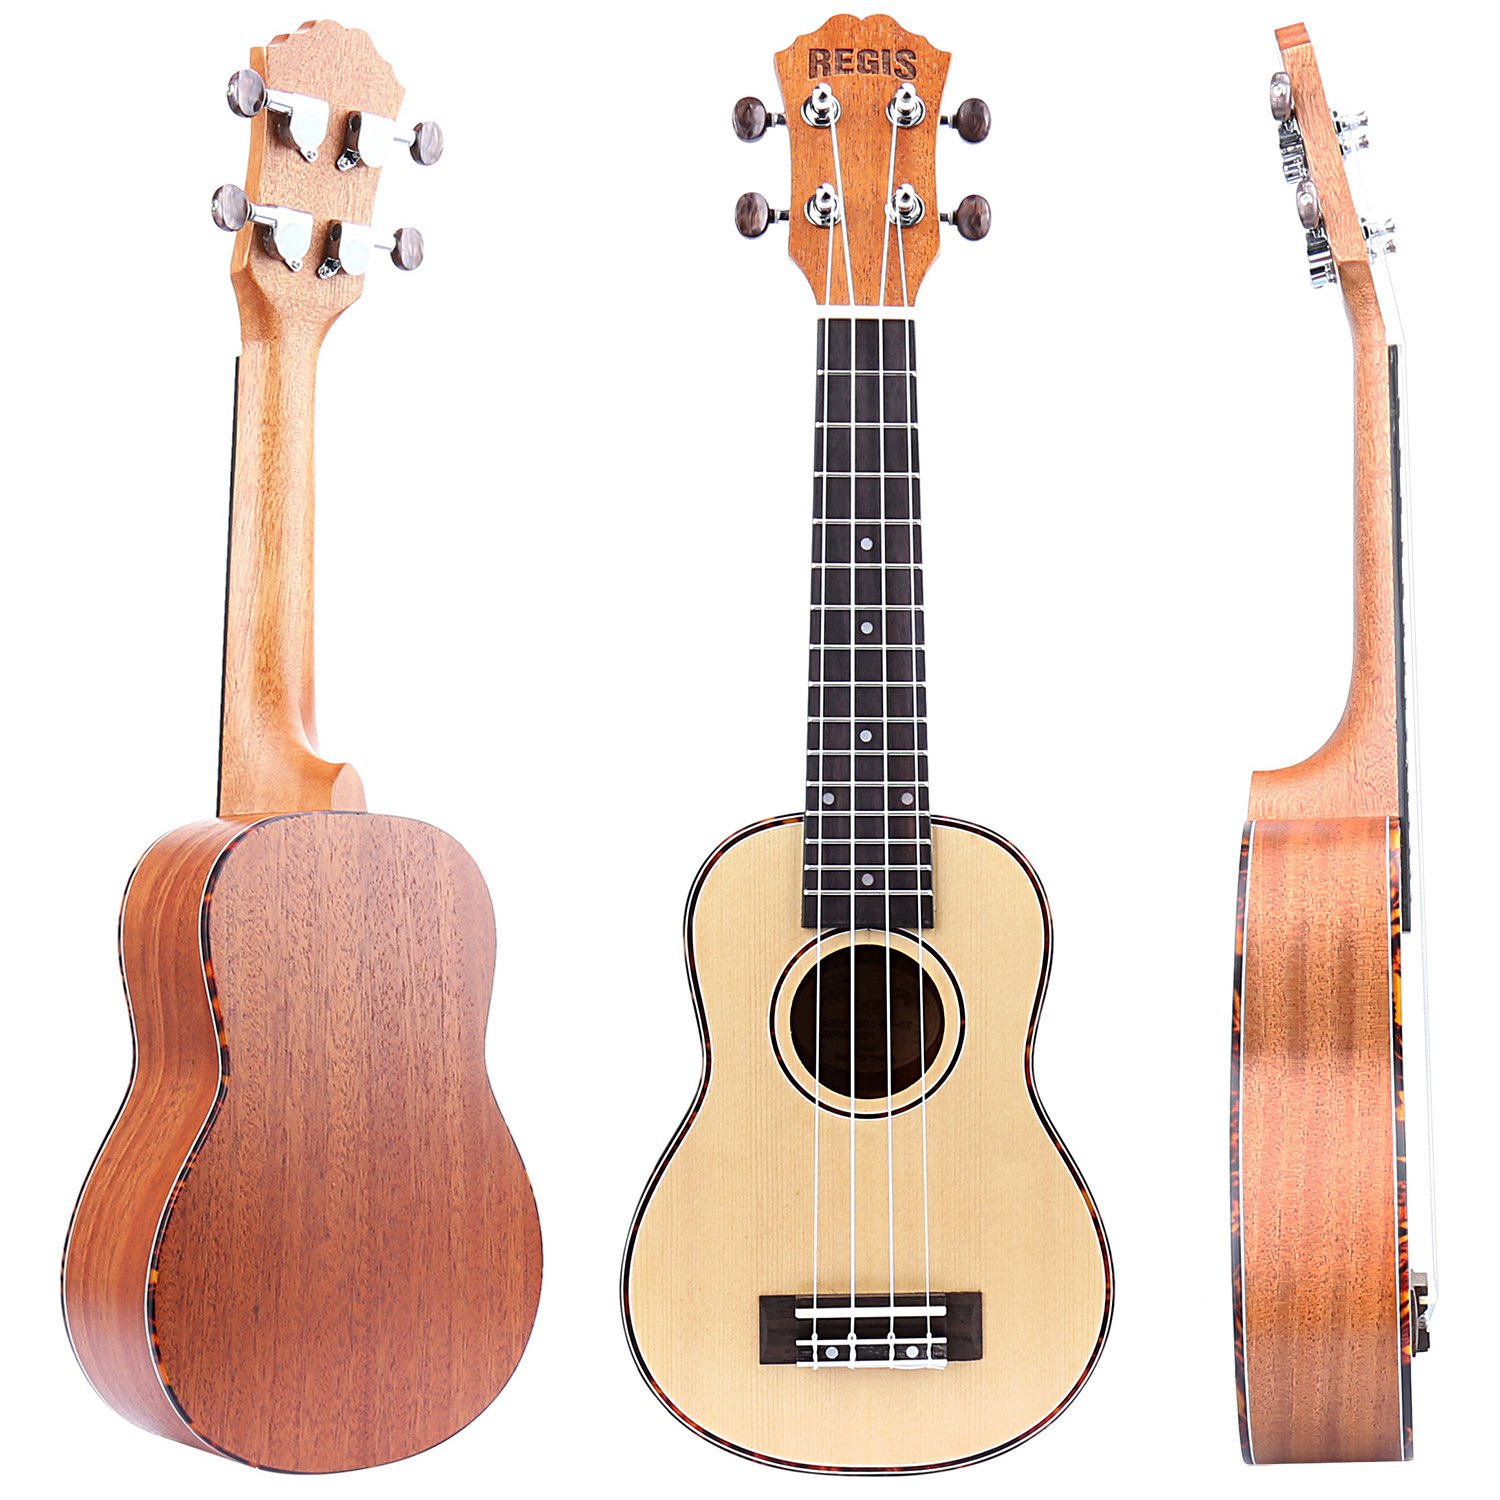 REGIS 21 Inch Soprano Ukulele with Aquila Strings, OX Bone Saddle (Zebrano) RU-15